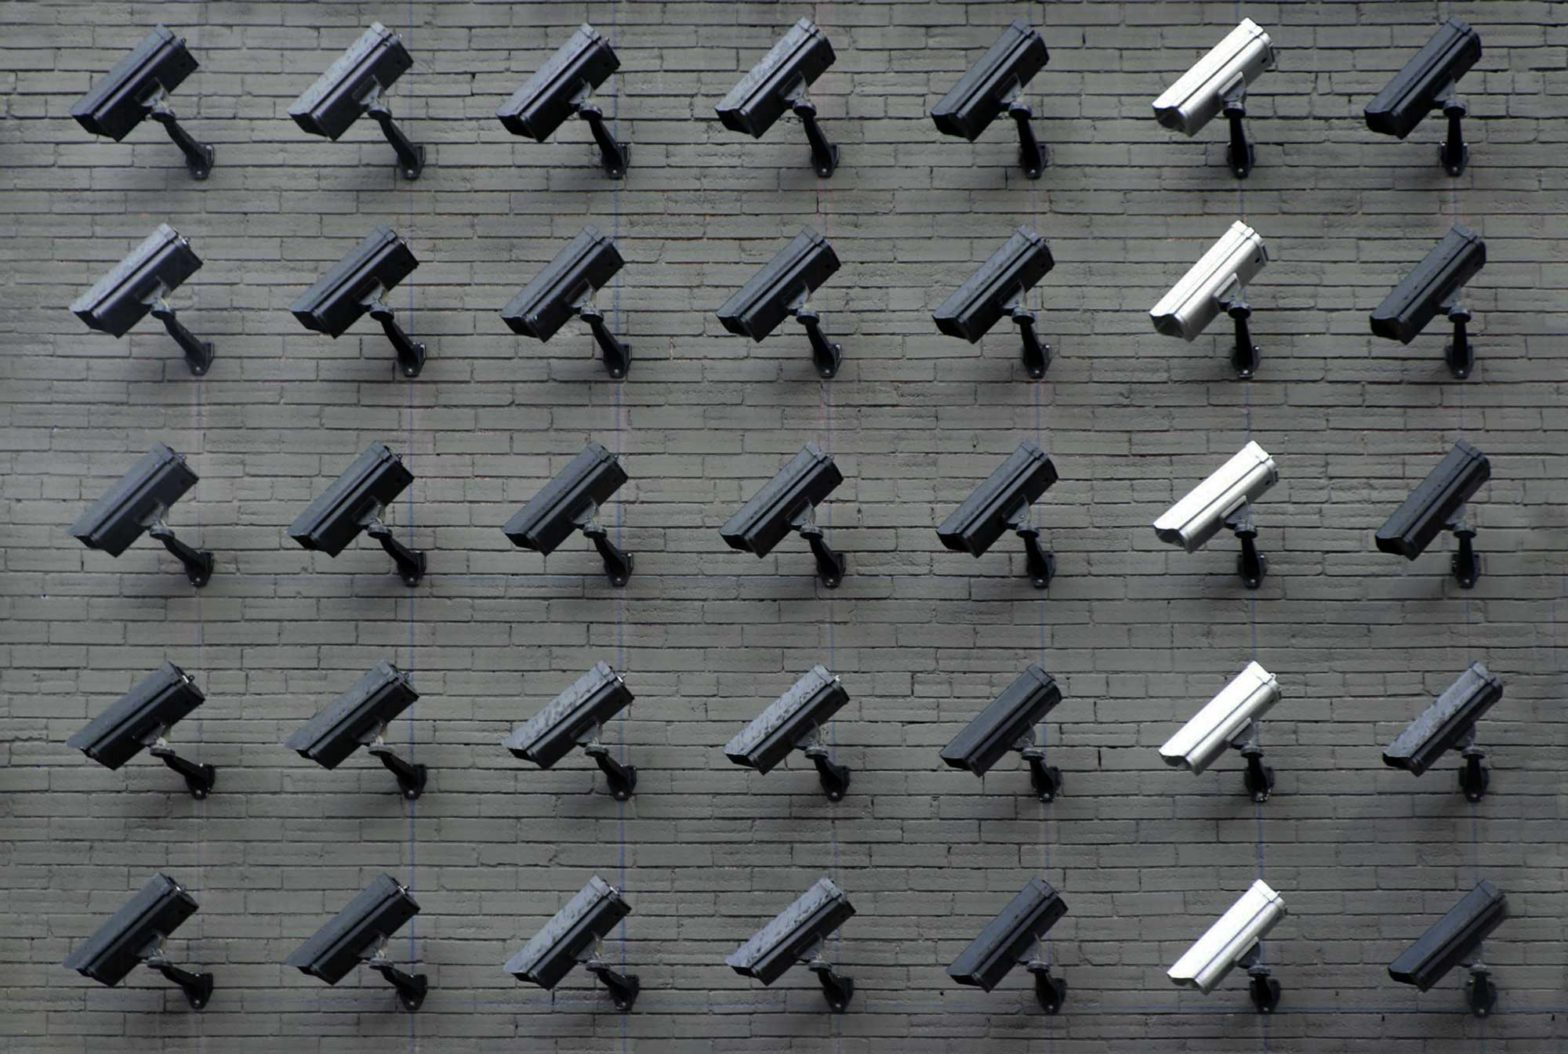 A wall of cameras. Most of the cameras are black with a column of white cameras.